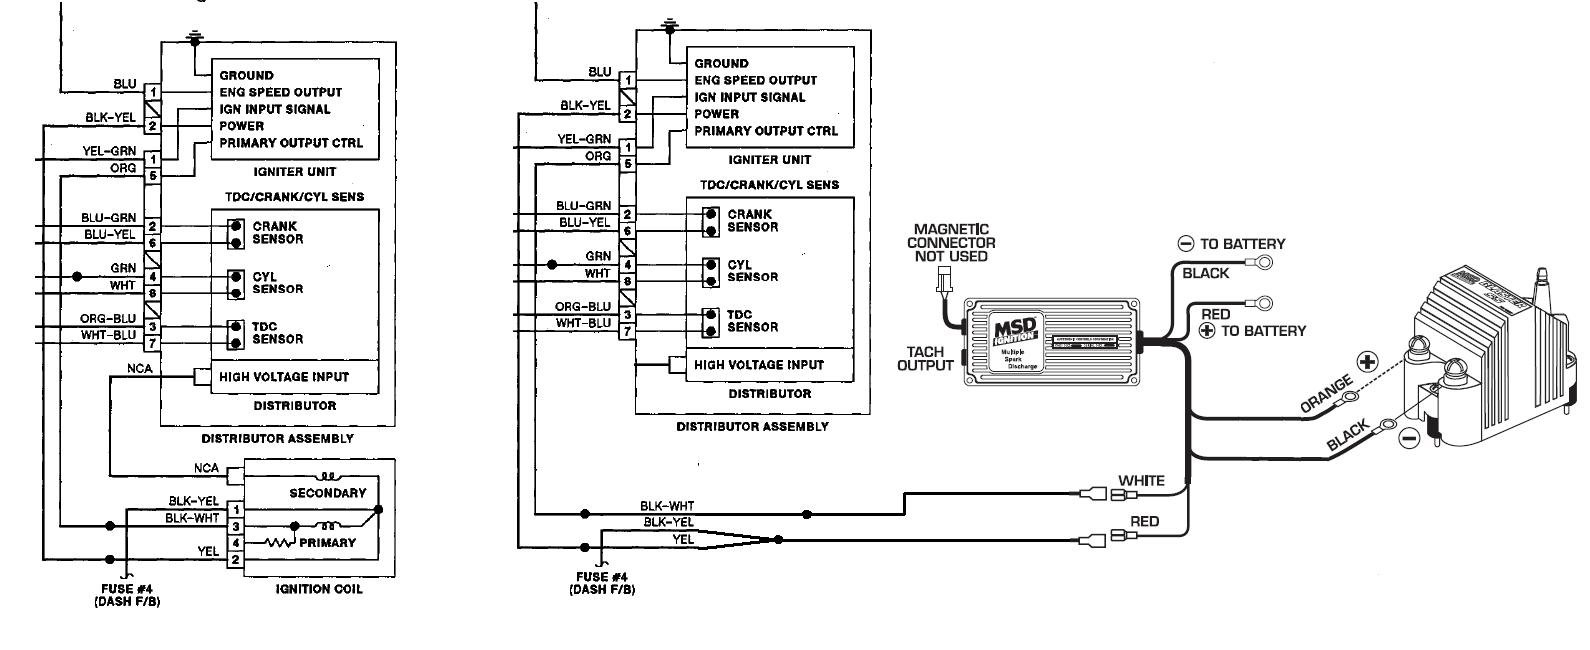 msd blaster ss wiring diagram wirdig series and a blaster ss coil on msd blaster ss coil wiring diagram